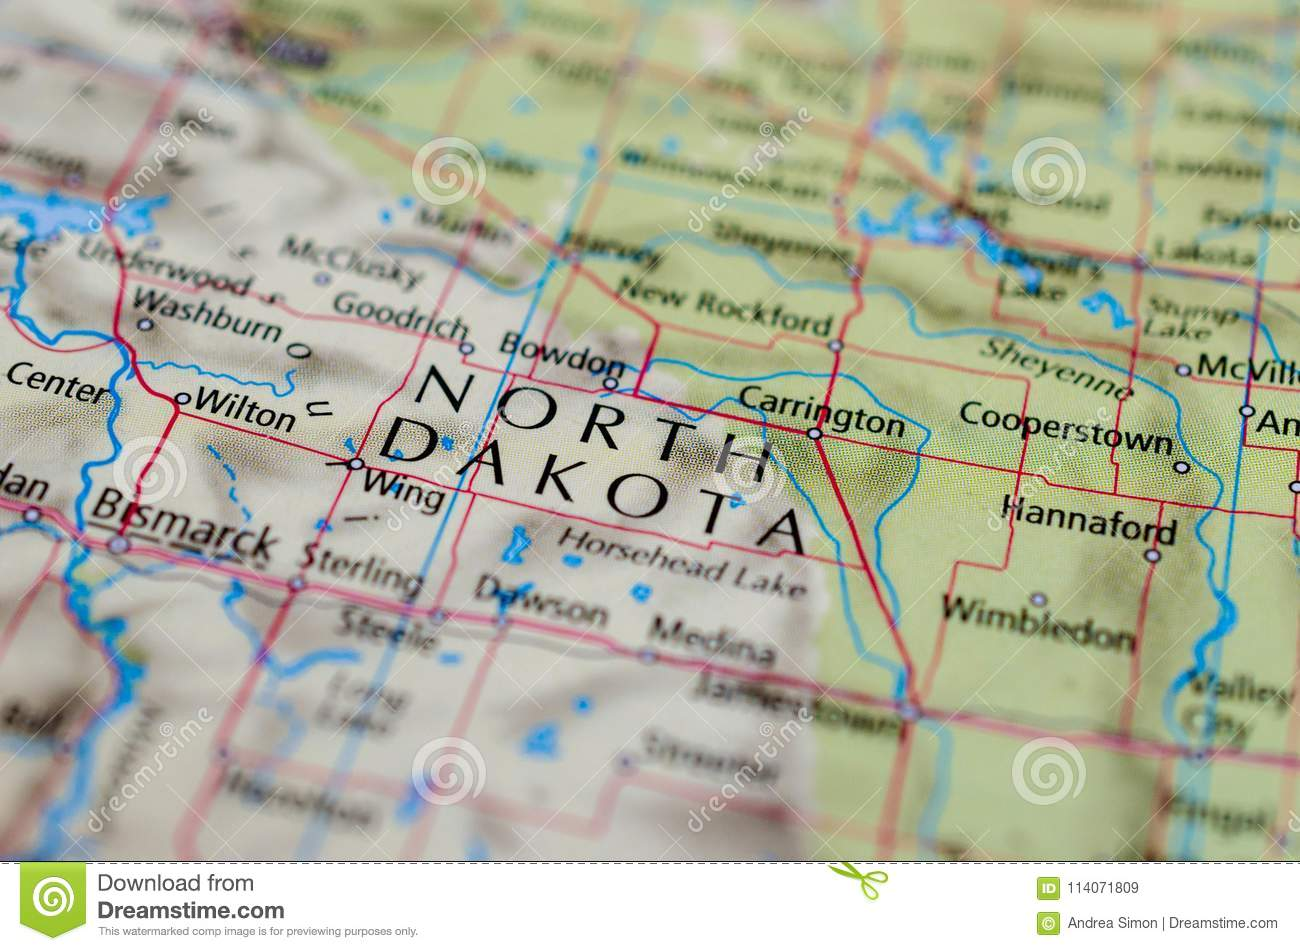 North Dakota on map stock image. Image of american ... on carrington nd map, foster county nd map, carrington north dakota weather, carrington nd weather, carrington north dakota hotels, fortuna nd map, mohall nd map, kensal nd map, cavalier nd map,